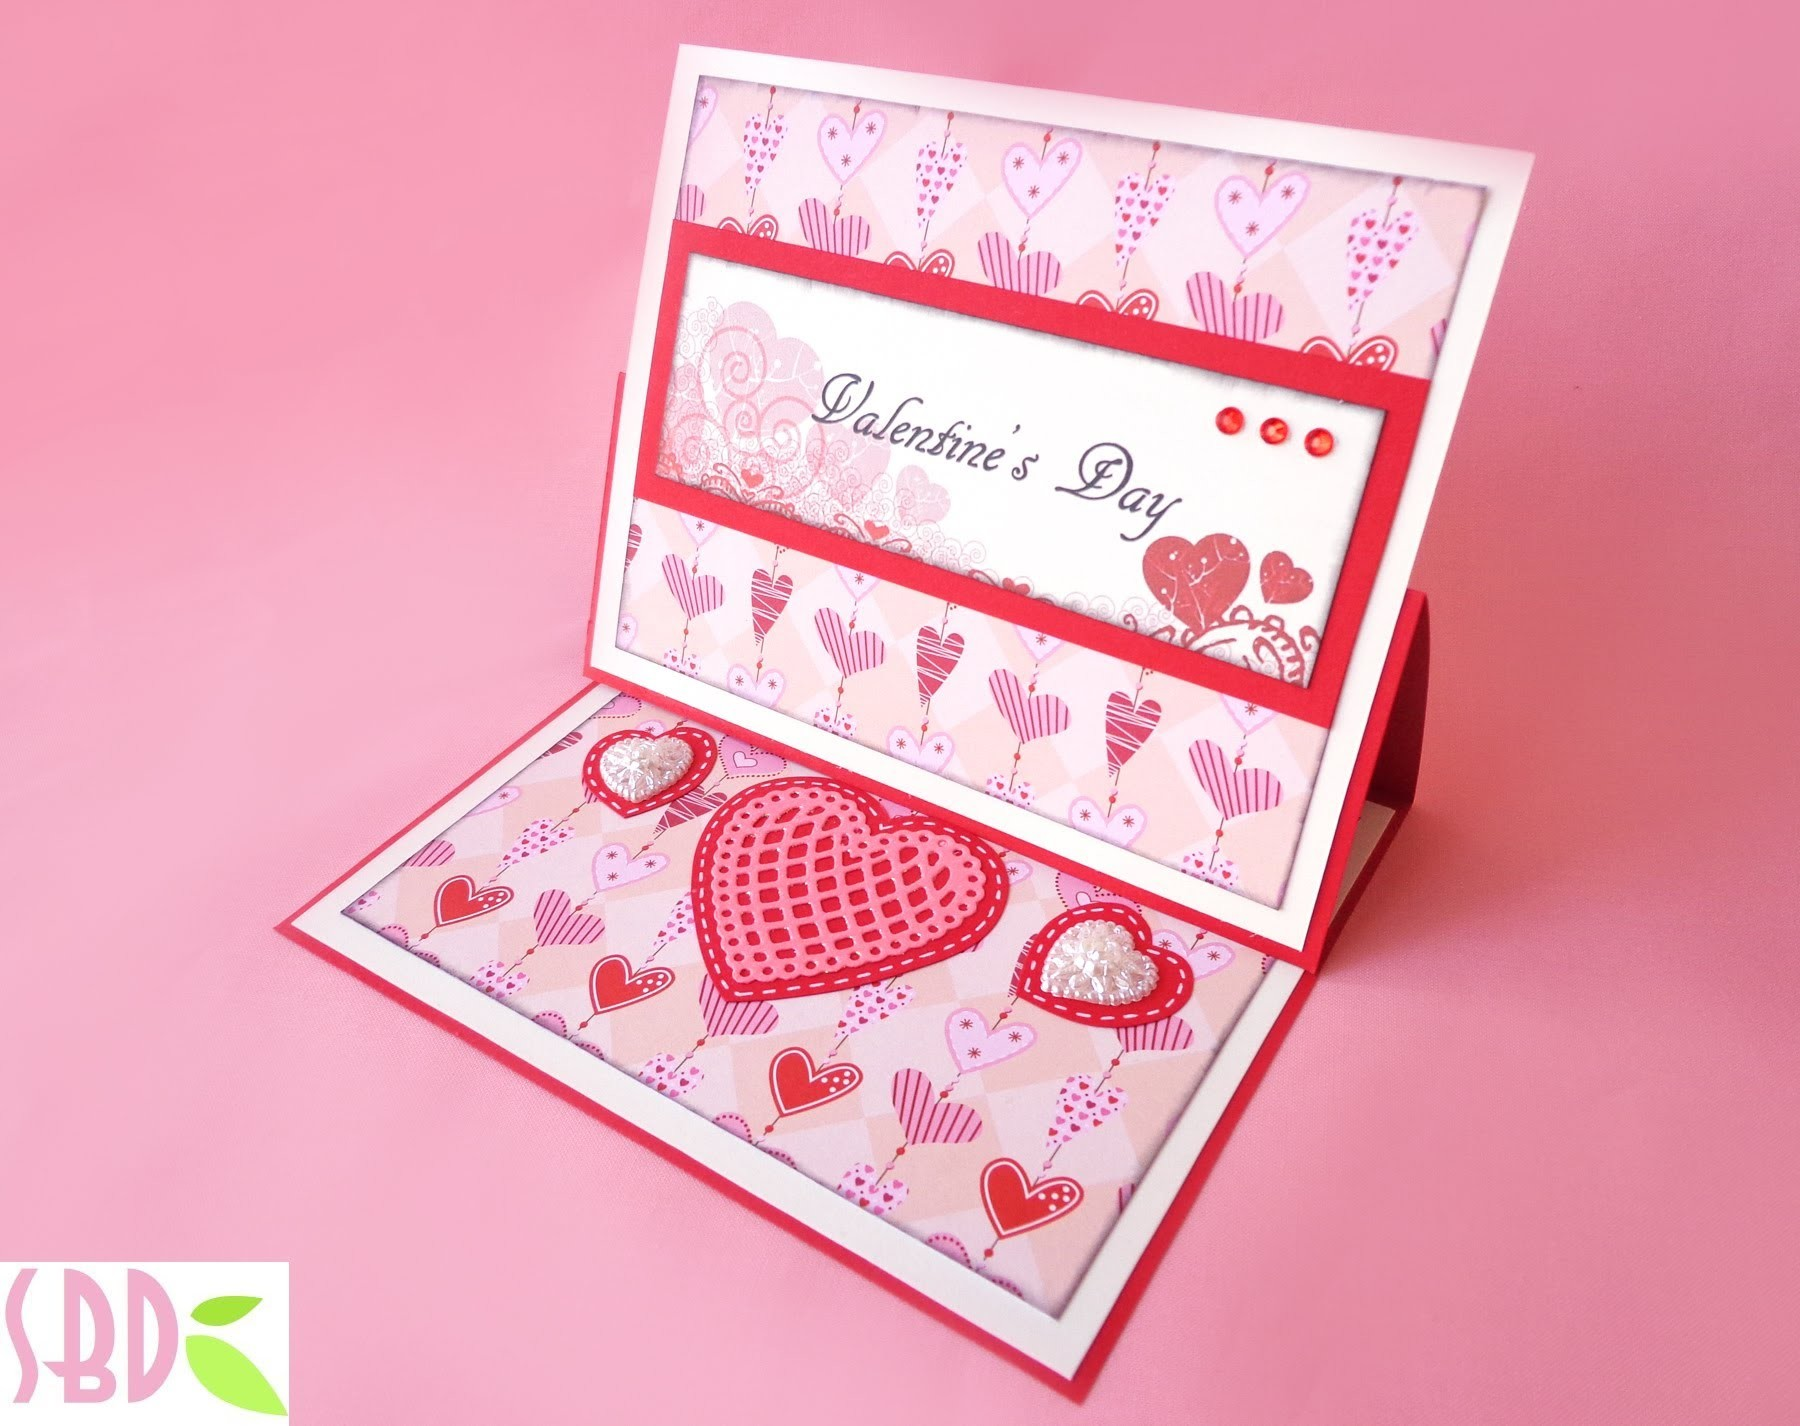 Card San Valentino Stand Up! - Valentine's Stand Up! Card